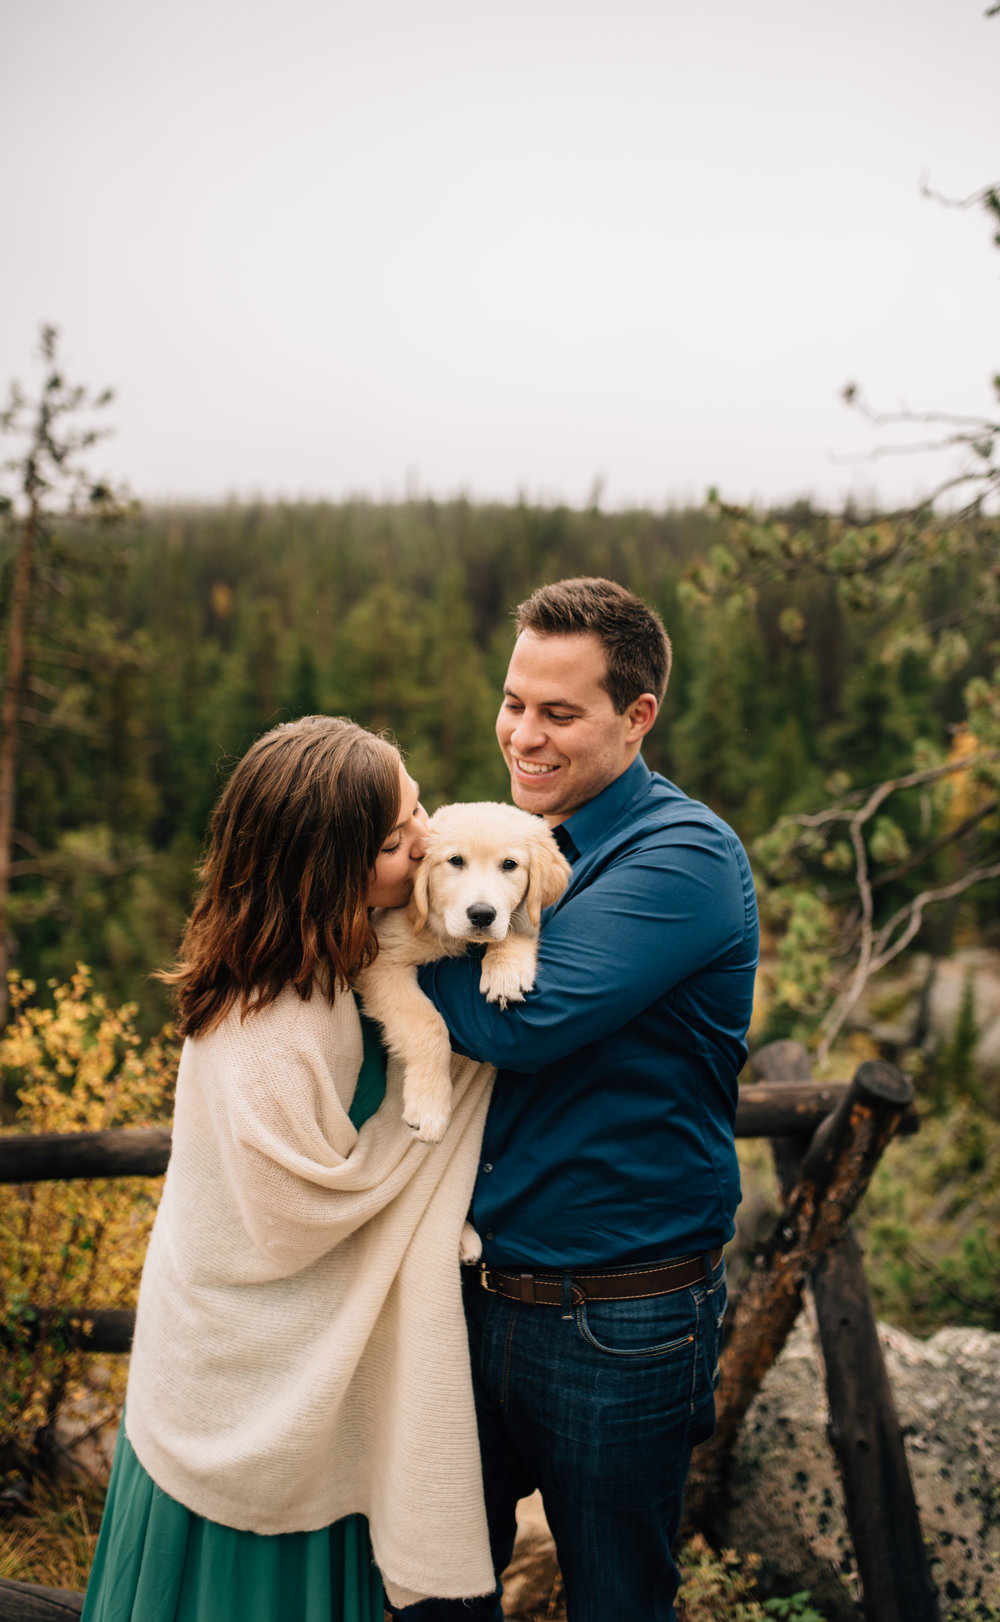 Vail, Colorado adventure elopement photographer.